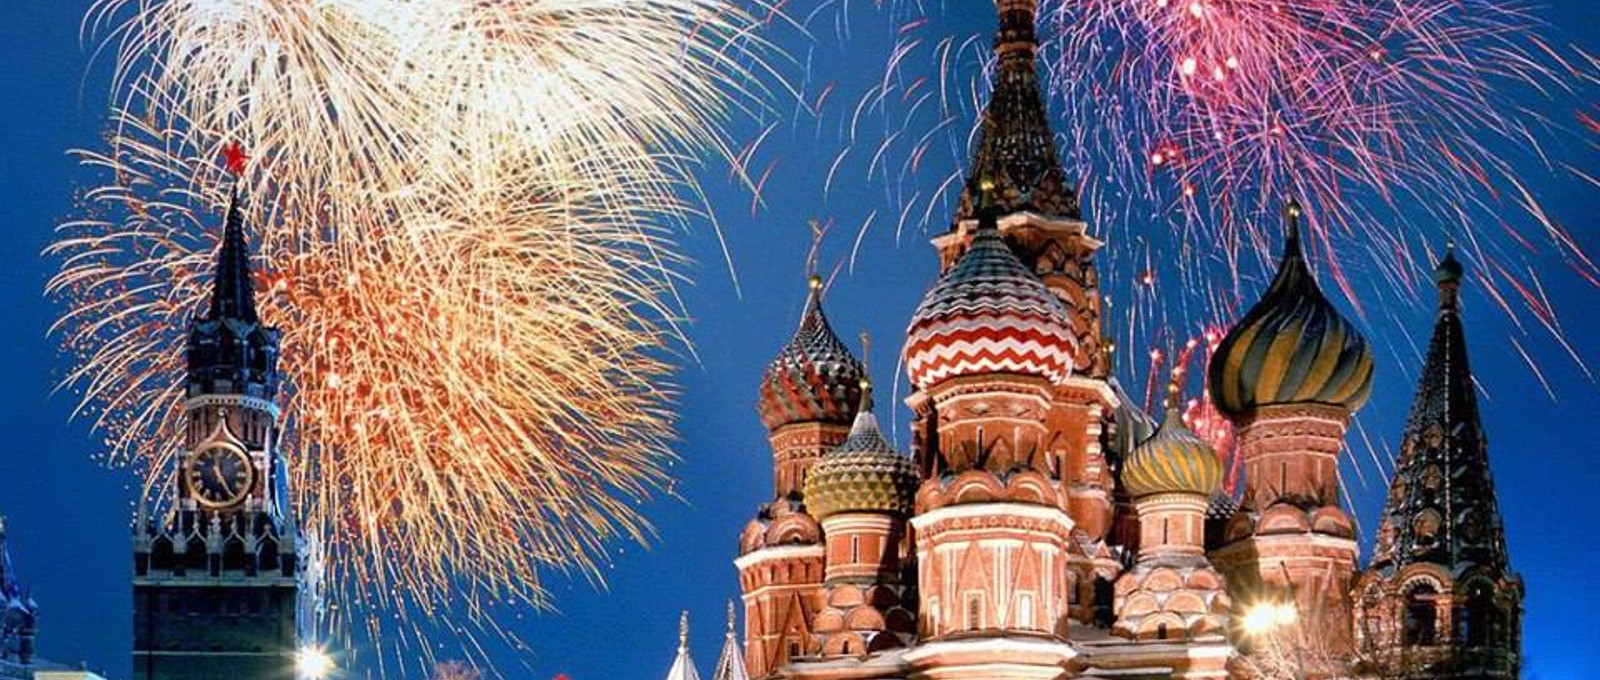 Silvester in Russland